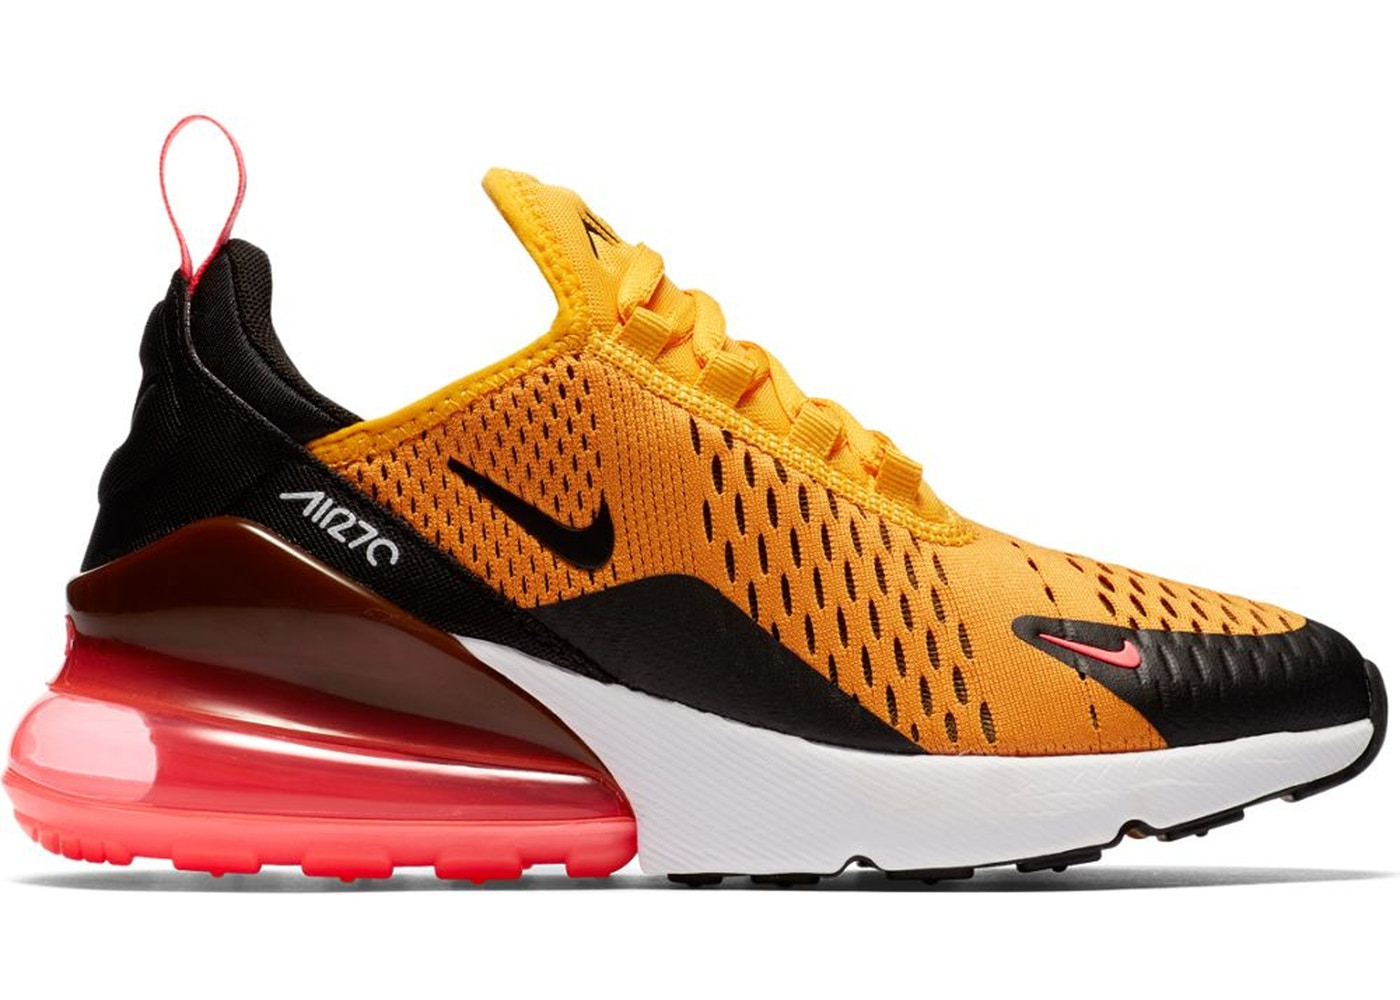 Nike Air Max 270 University Gold (GS)